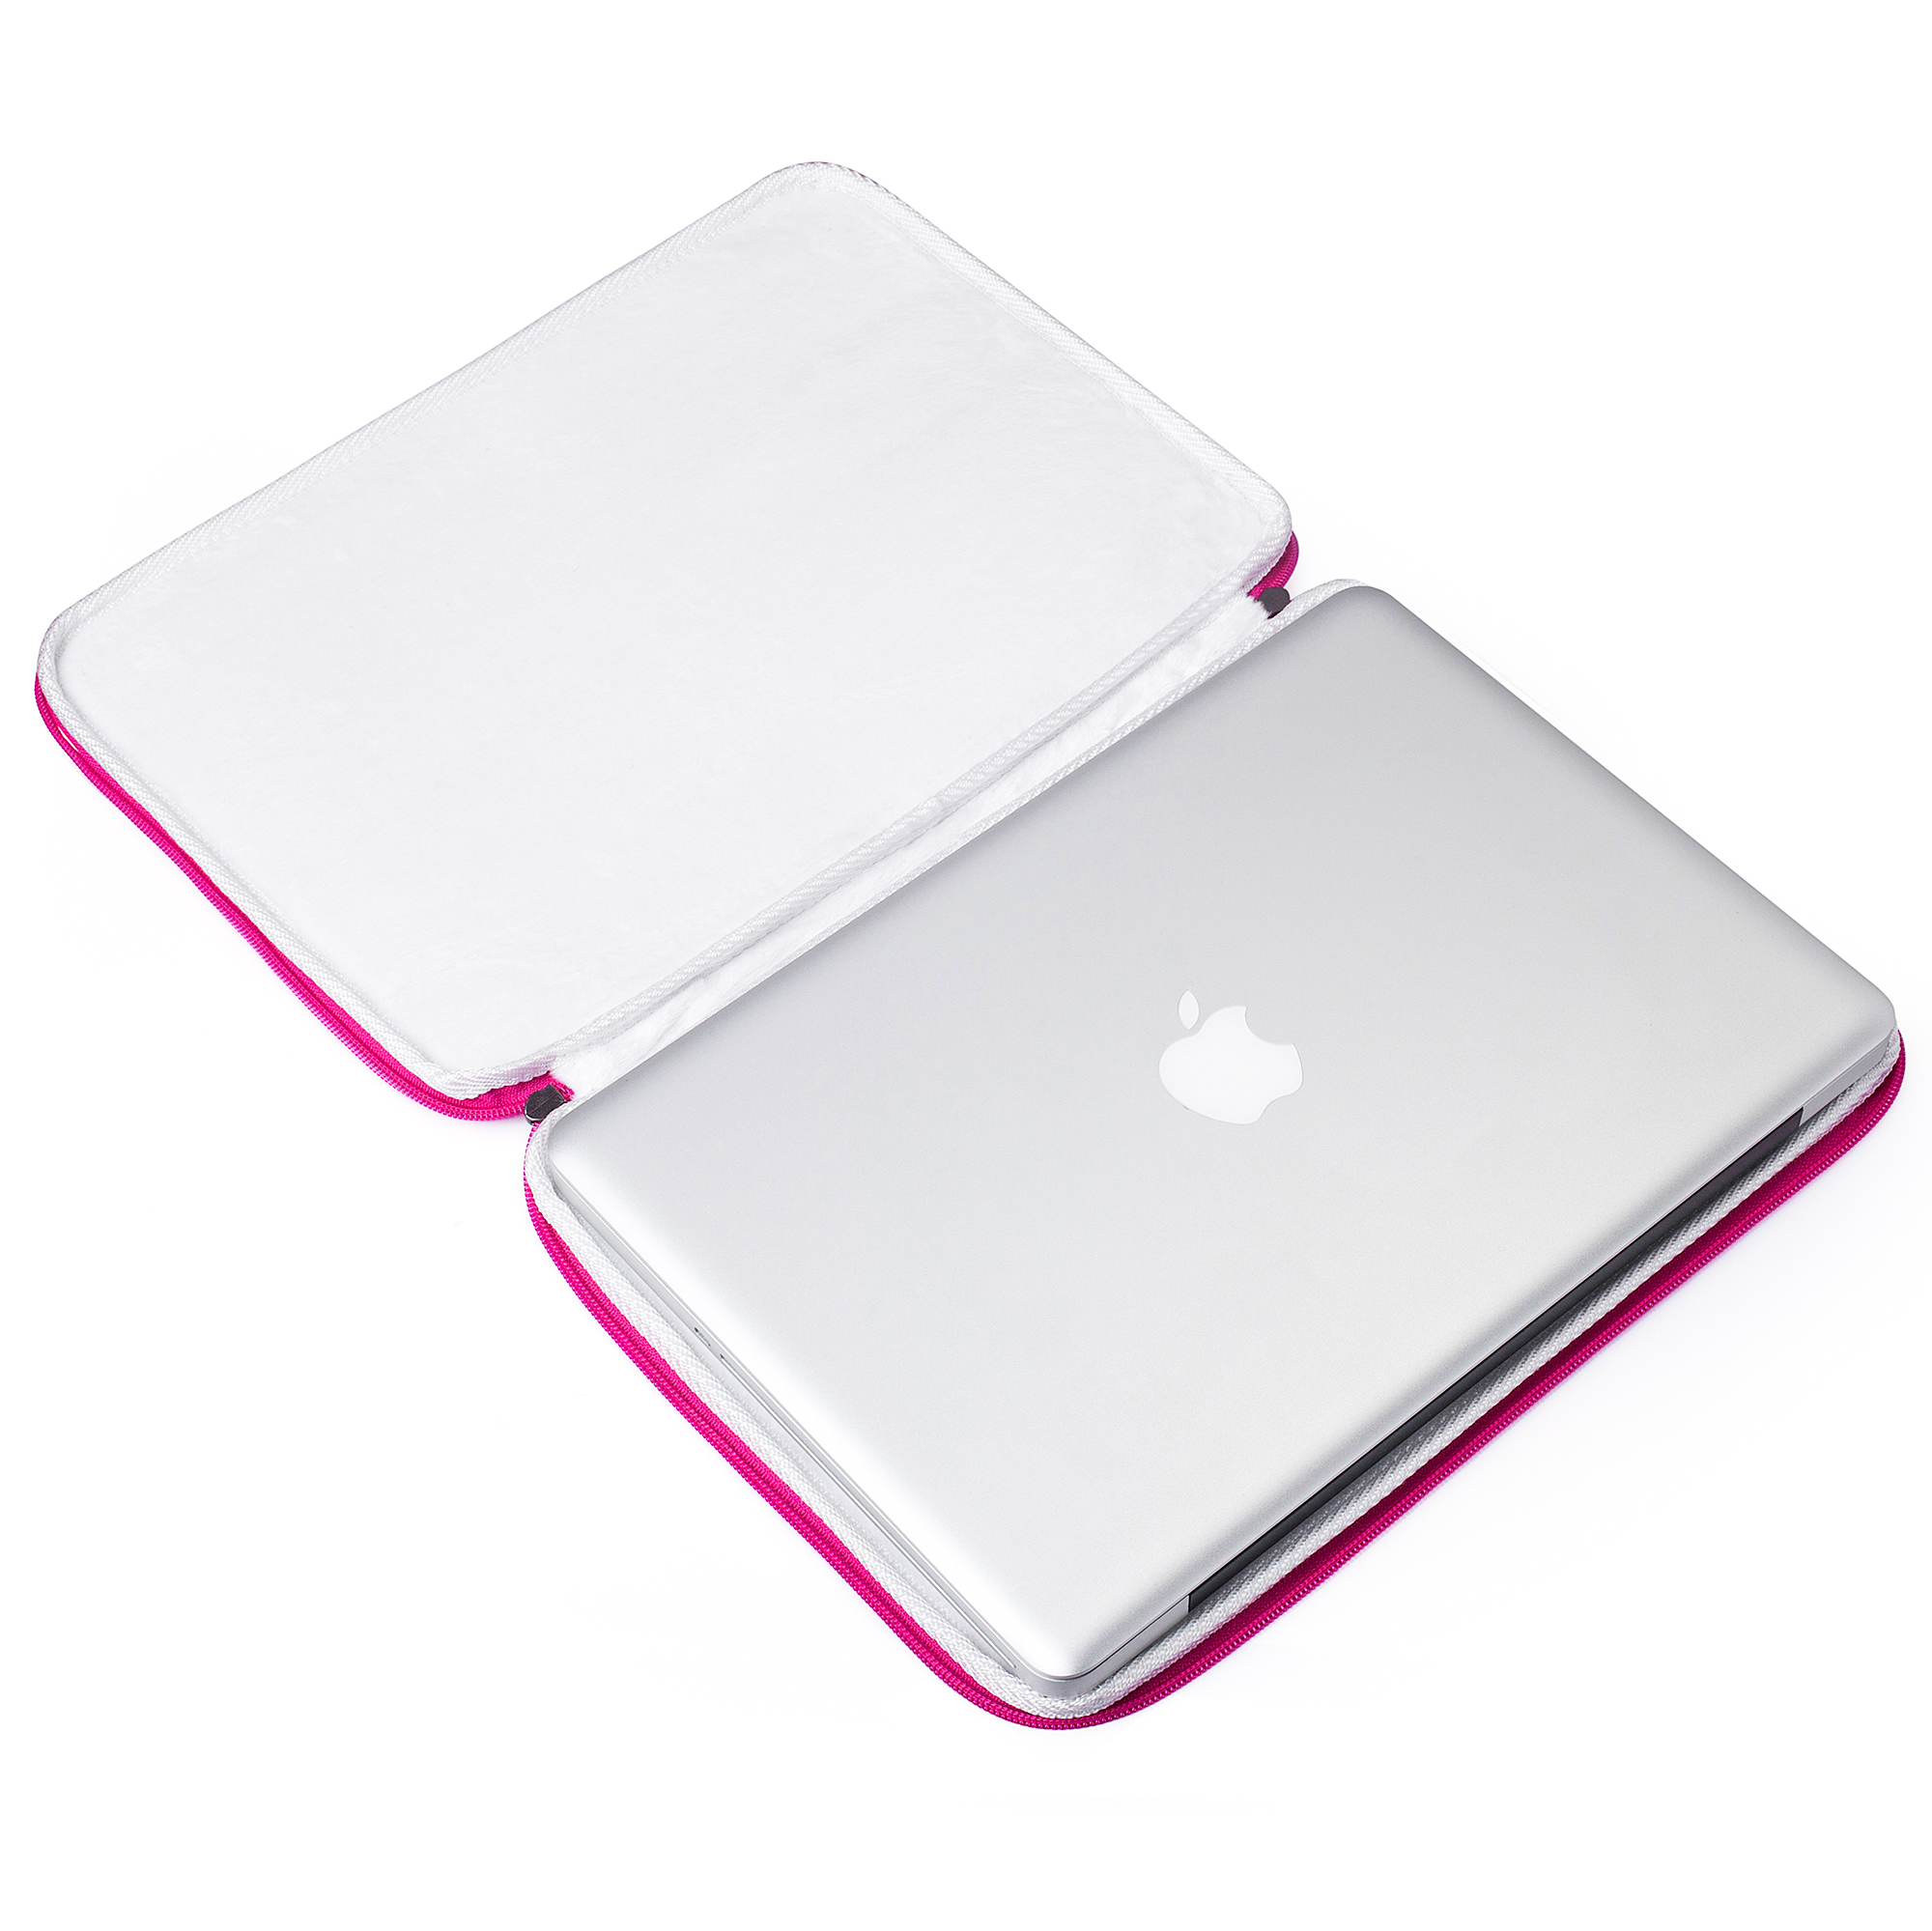 Squishy Laptop Cases : Soft Sleeve for MacBook 11 12 13 15 inch Retina Pro, Air Laptop Case 13.3 15.4 eBay